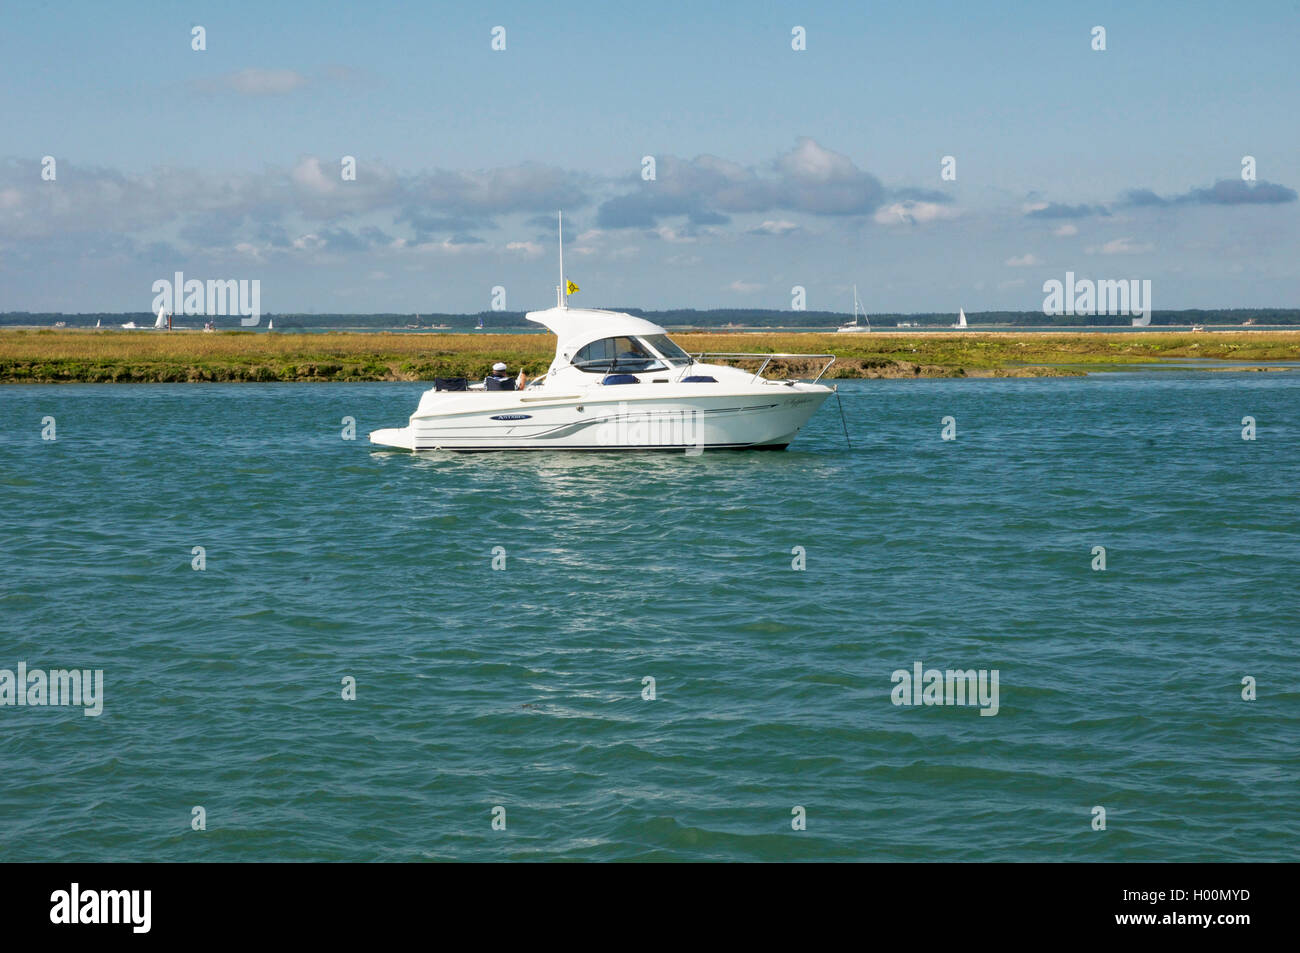 two people relaxing enjoying lunch on small moored motor boat. - Stock Image